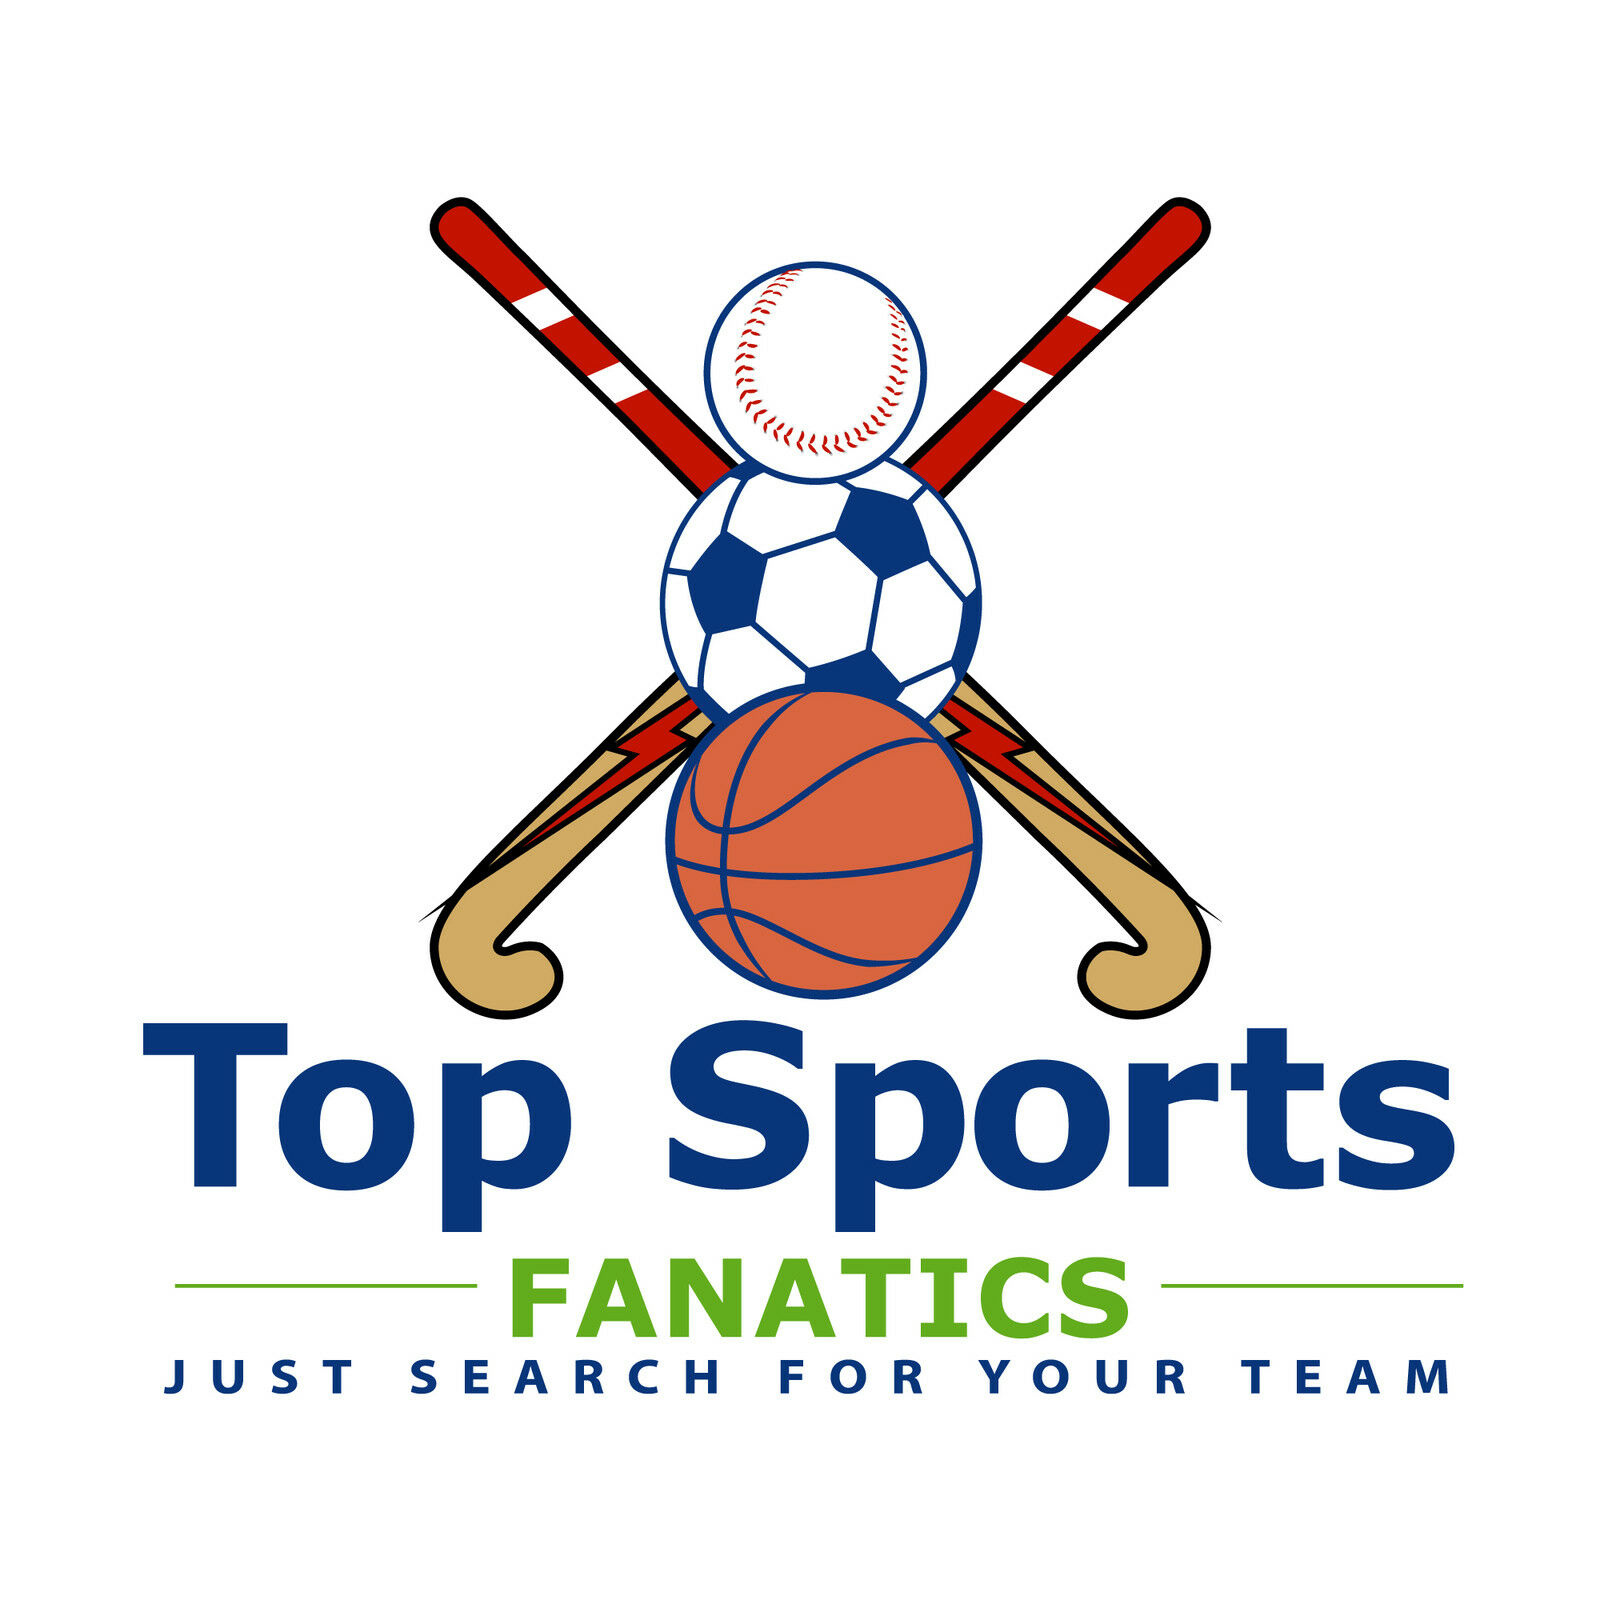 Top Sports Fanatics